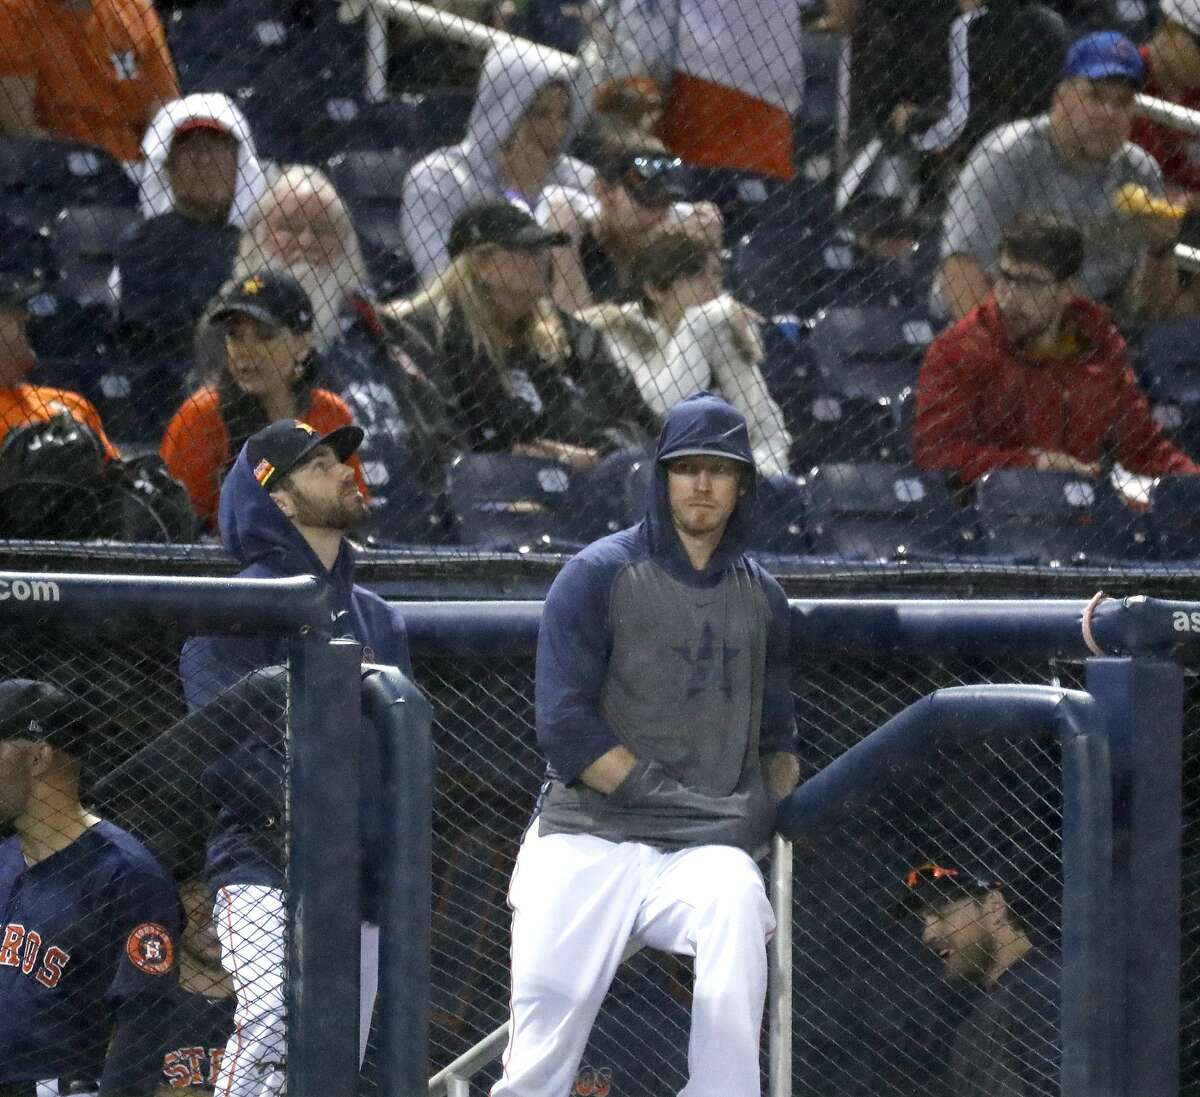 Houston Astros pitchers Chris Devenski and Austin Pruitt stand in the dugout as the rains started in the second inning during the Astros-Nationals spring training game at the Fitteam Ballpark of The Palm Beaches, in West Palm Beach, Saturday, Feb. 22, 2020.